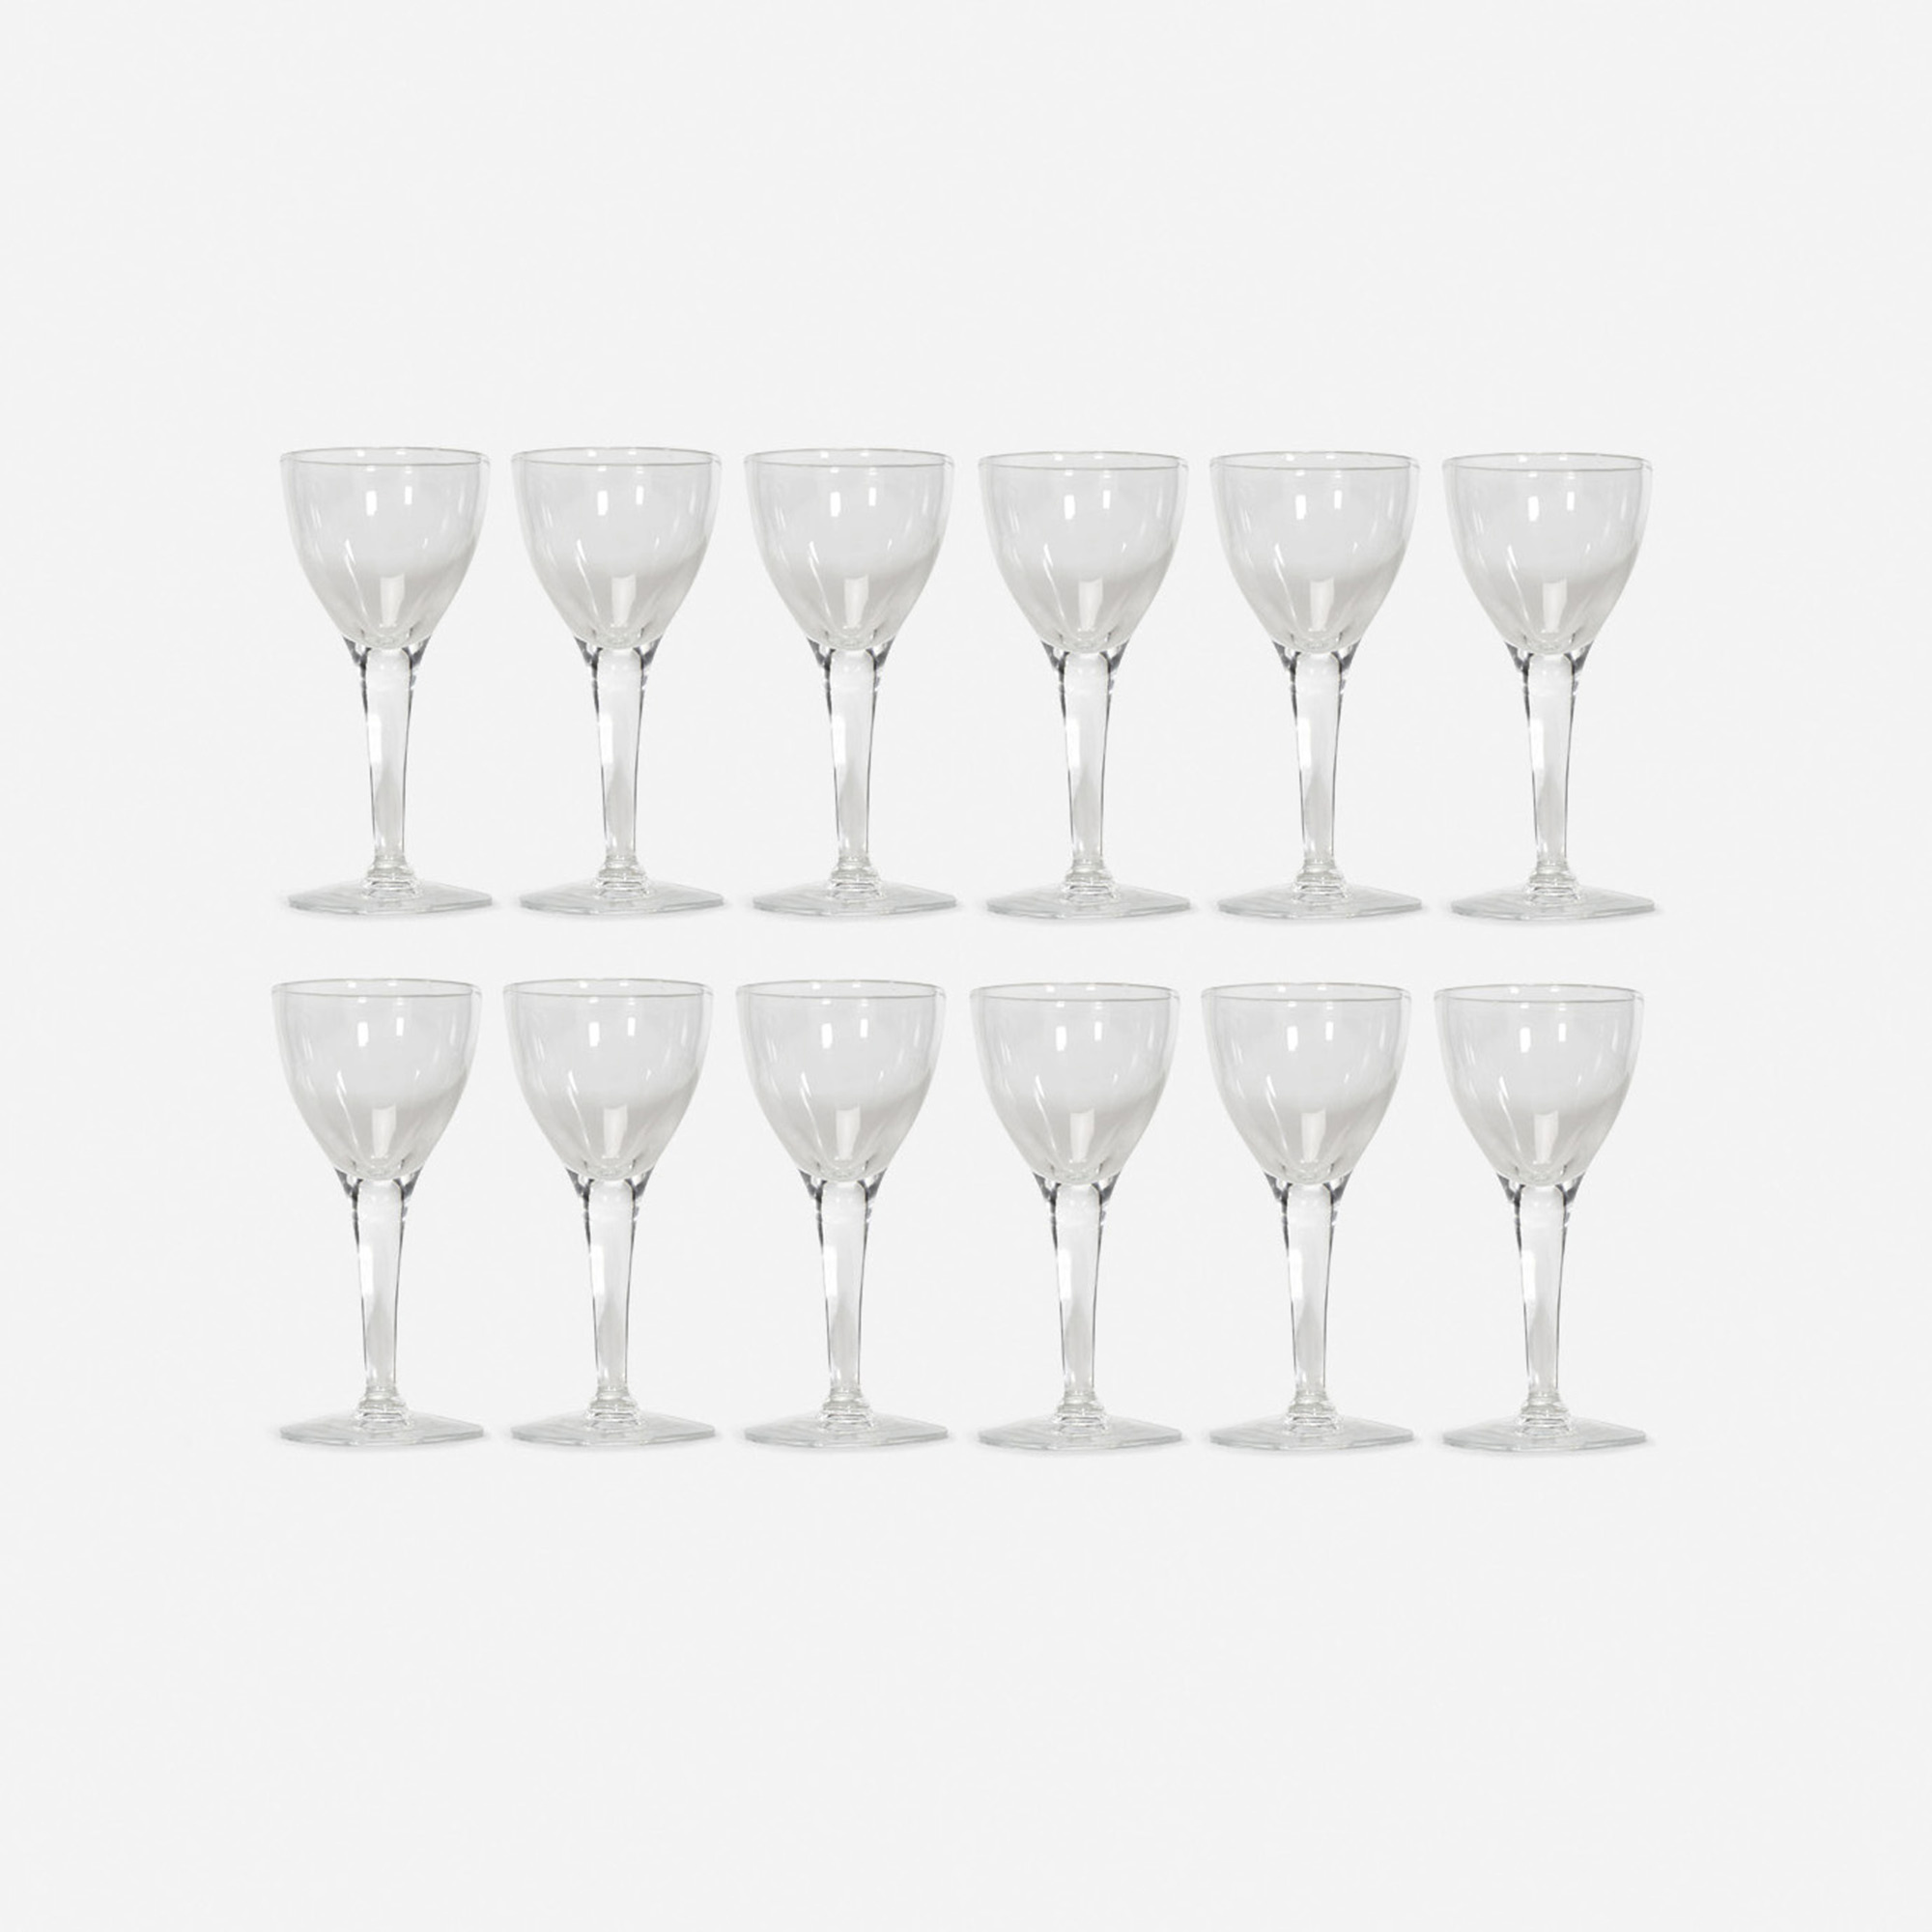 328: Garth and Ada Louise Huxtable / Cordial glasses from The Four Seasons, set of twelve (1 of 1)